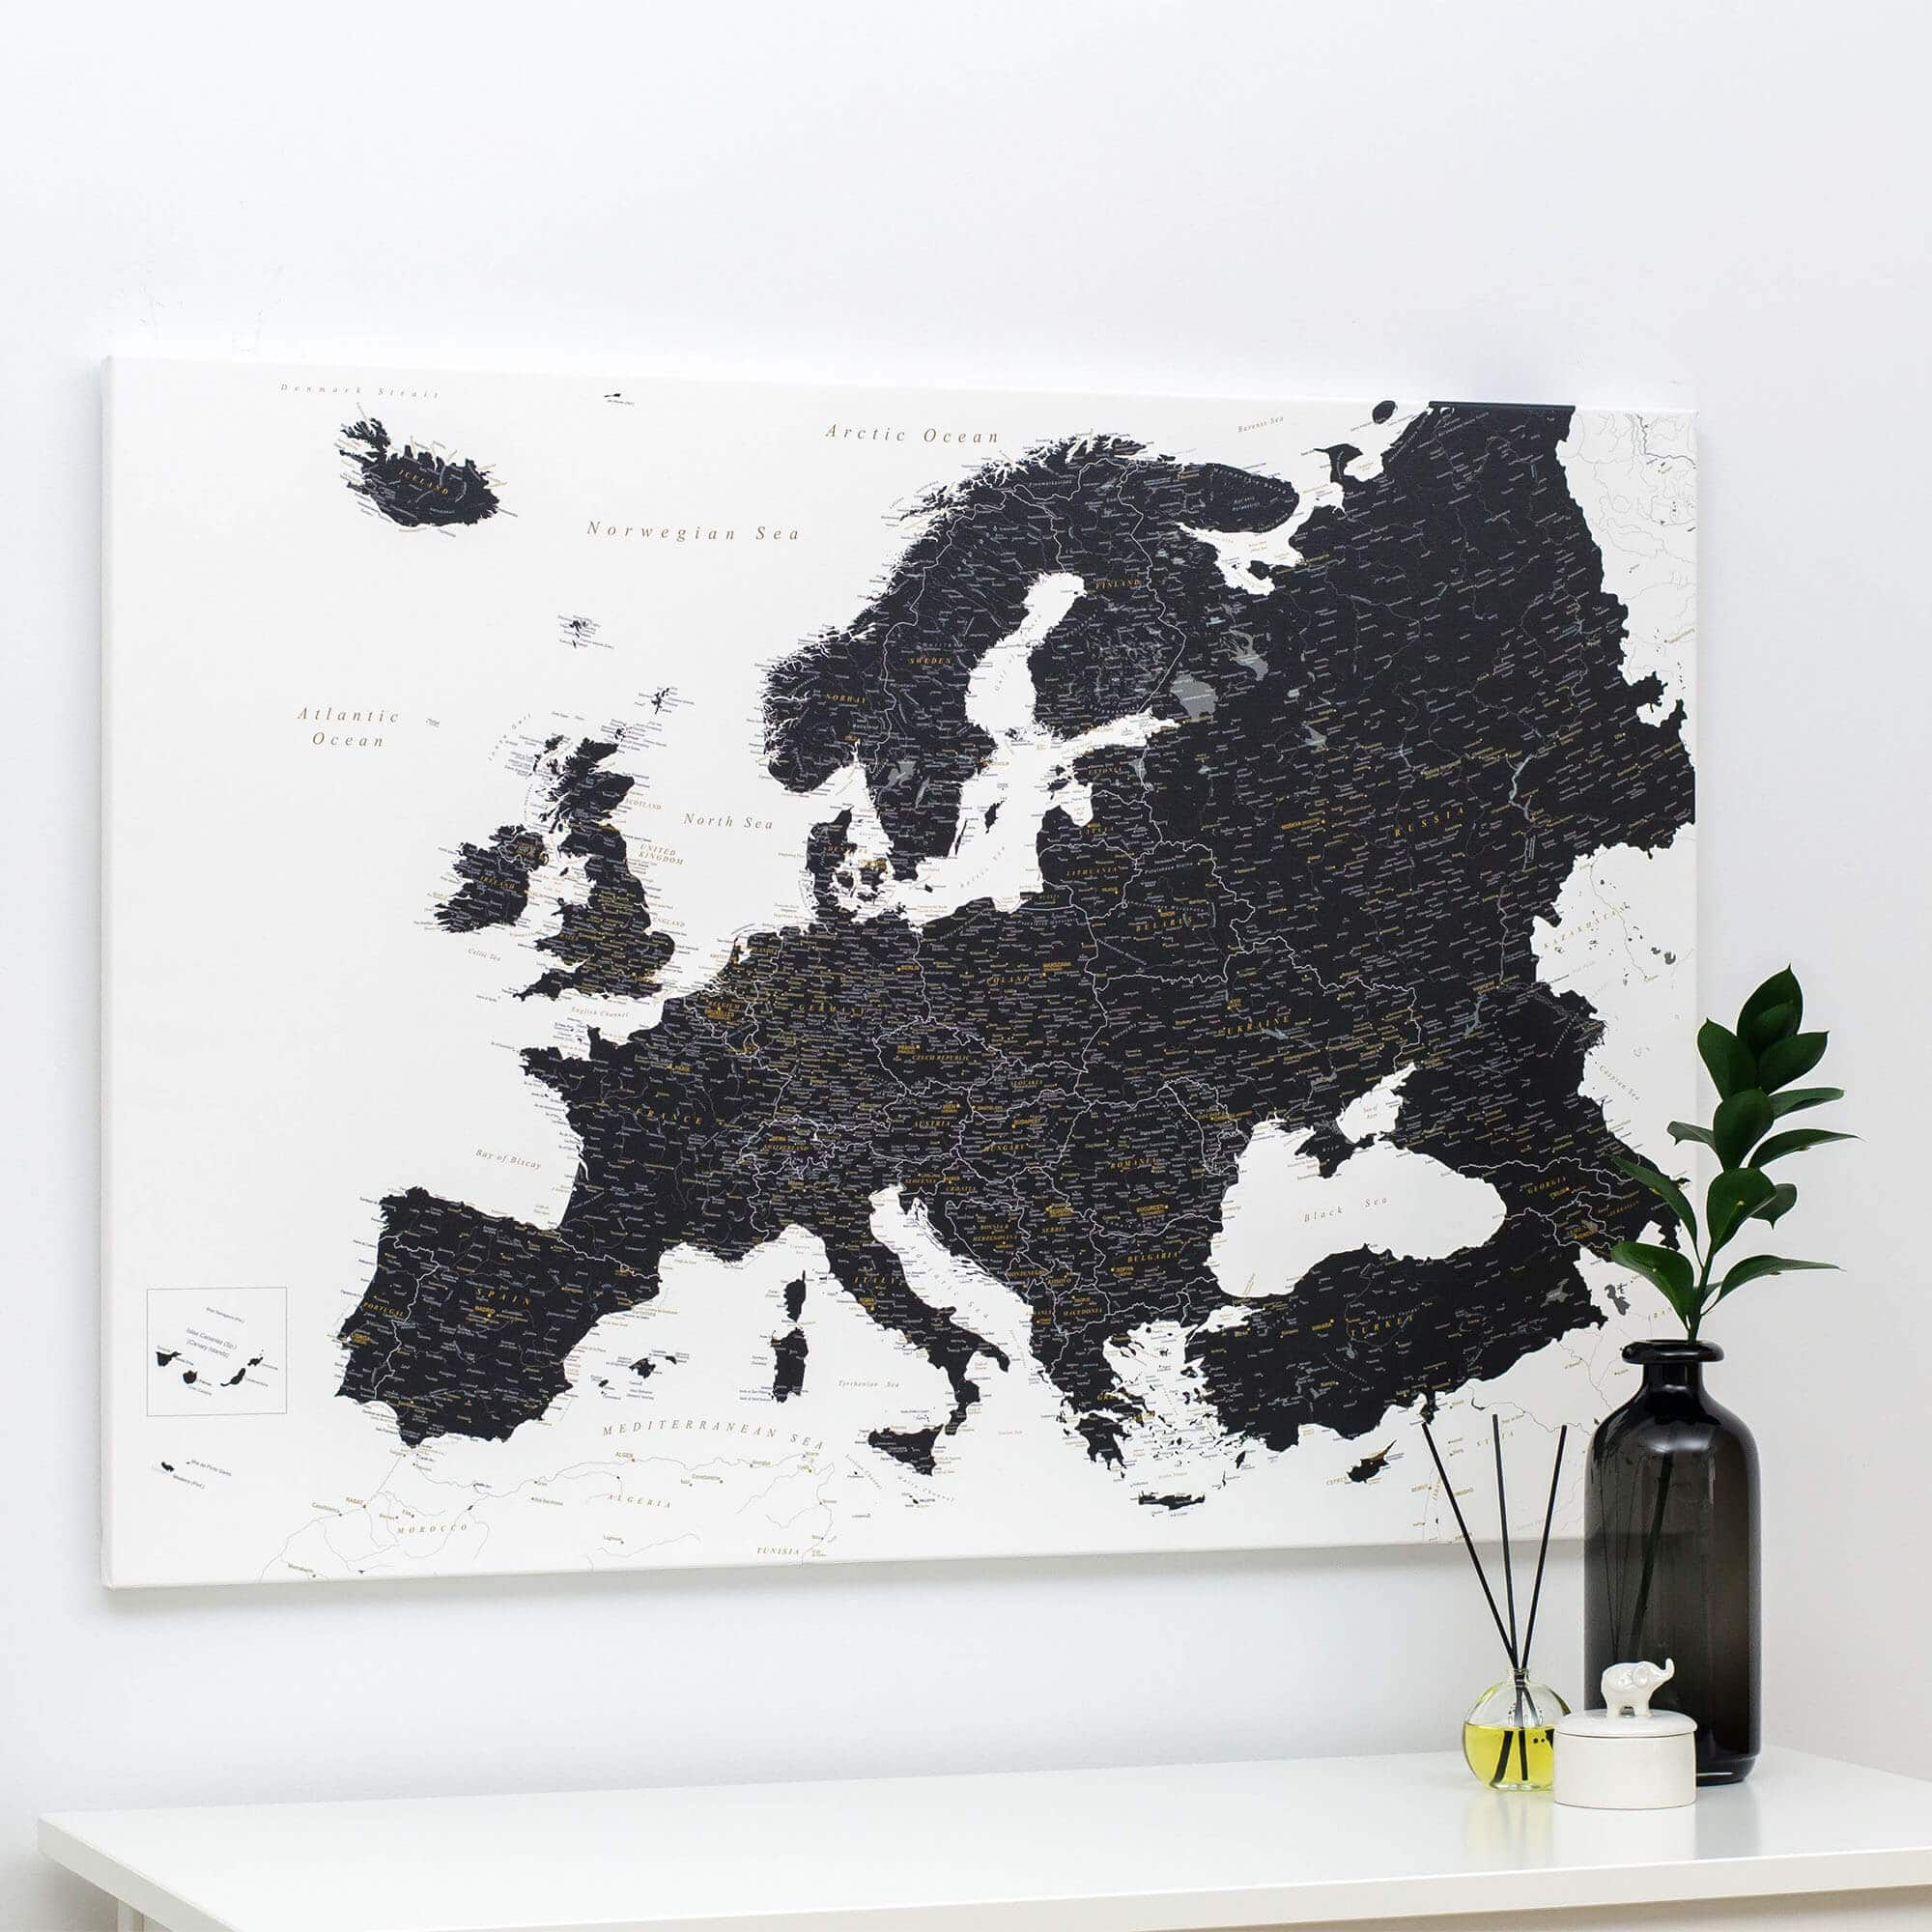 Picture of: Europe Push Pin Map Black And White Detailed Tripmapworld Com